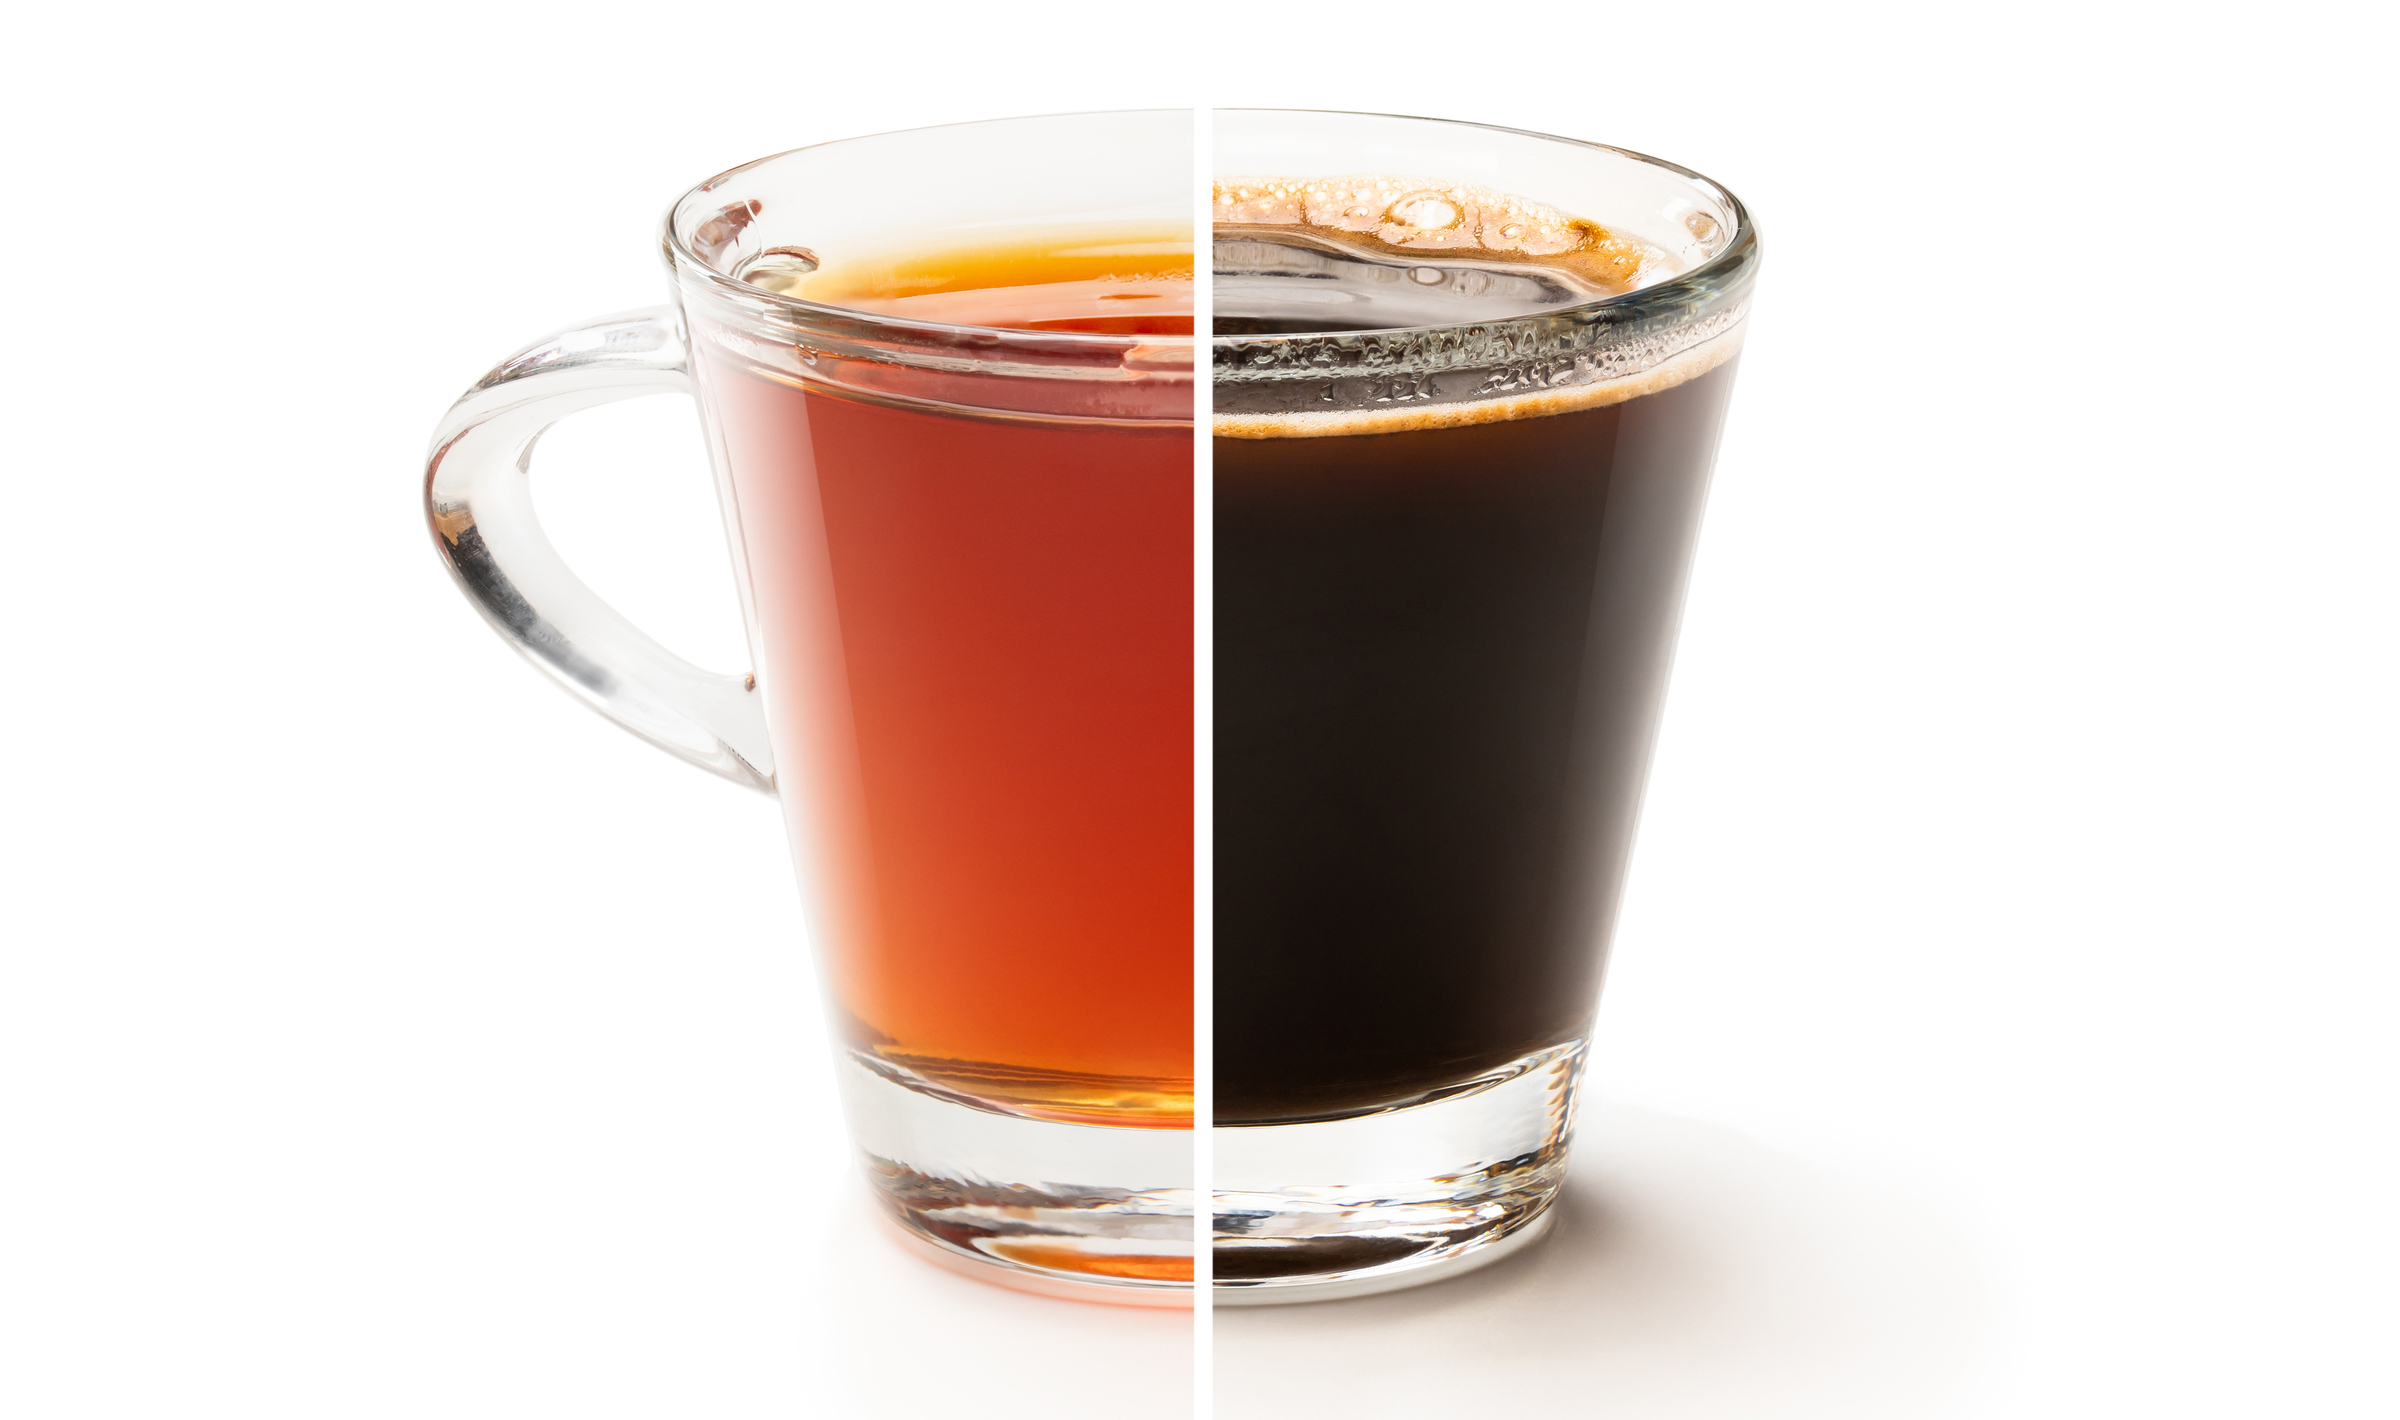 caffeine in coffee versus tea